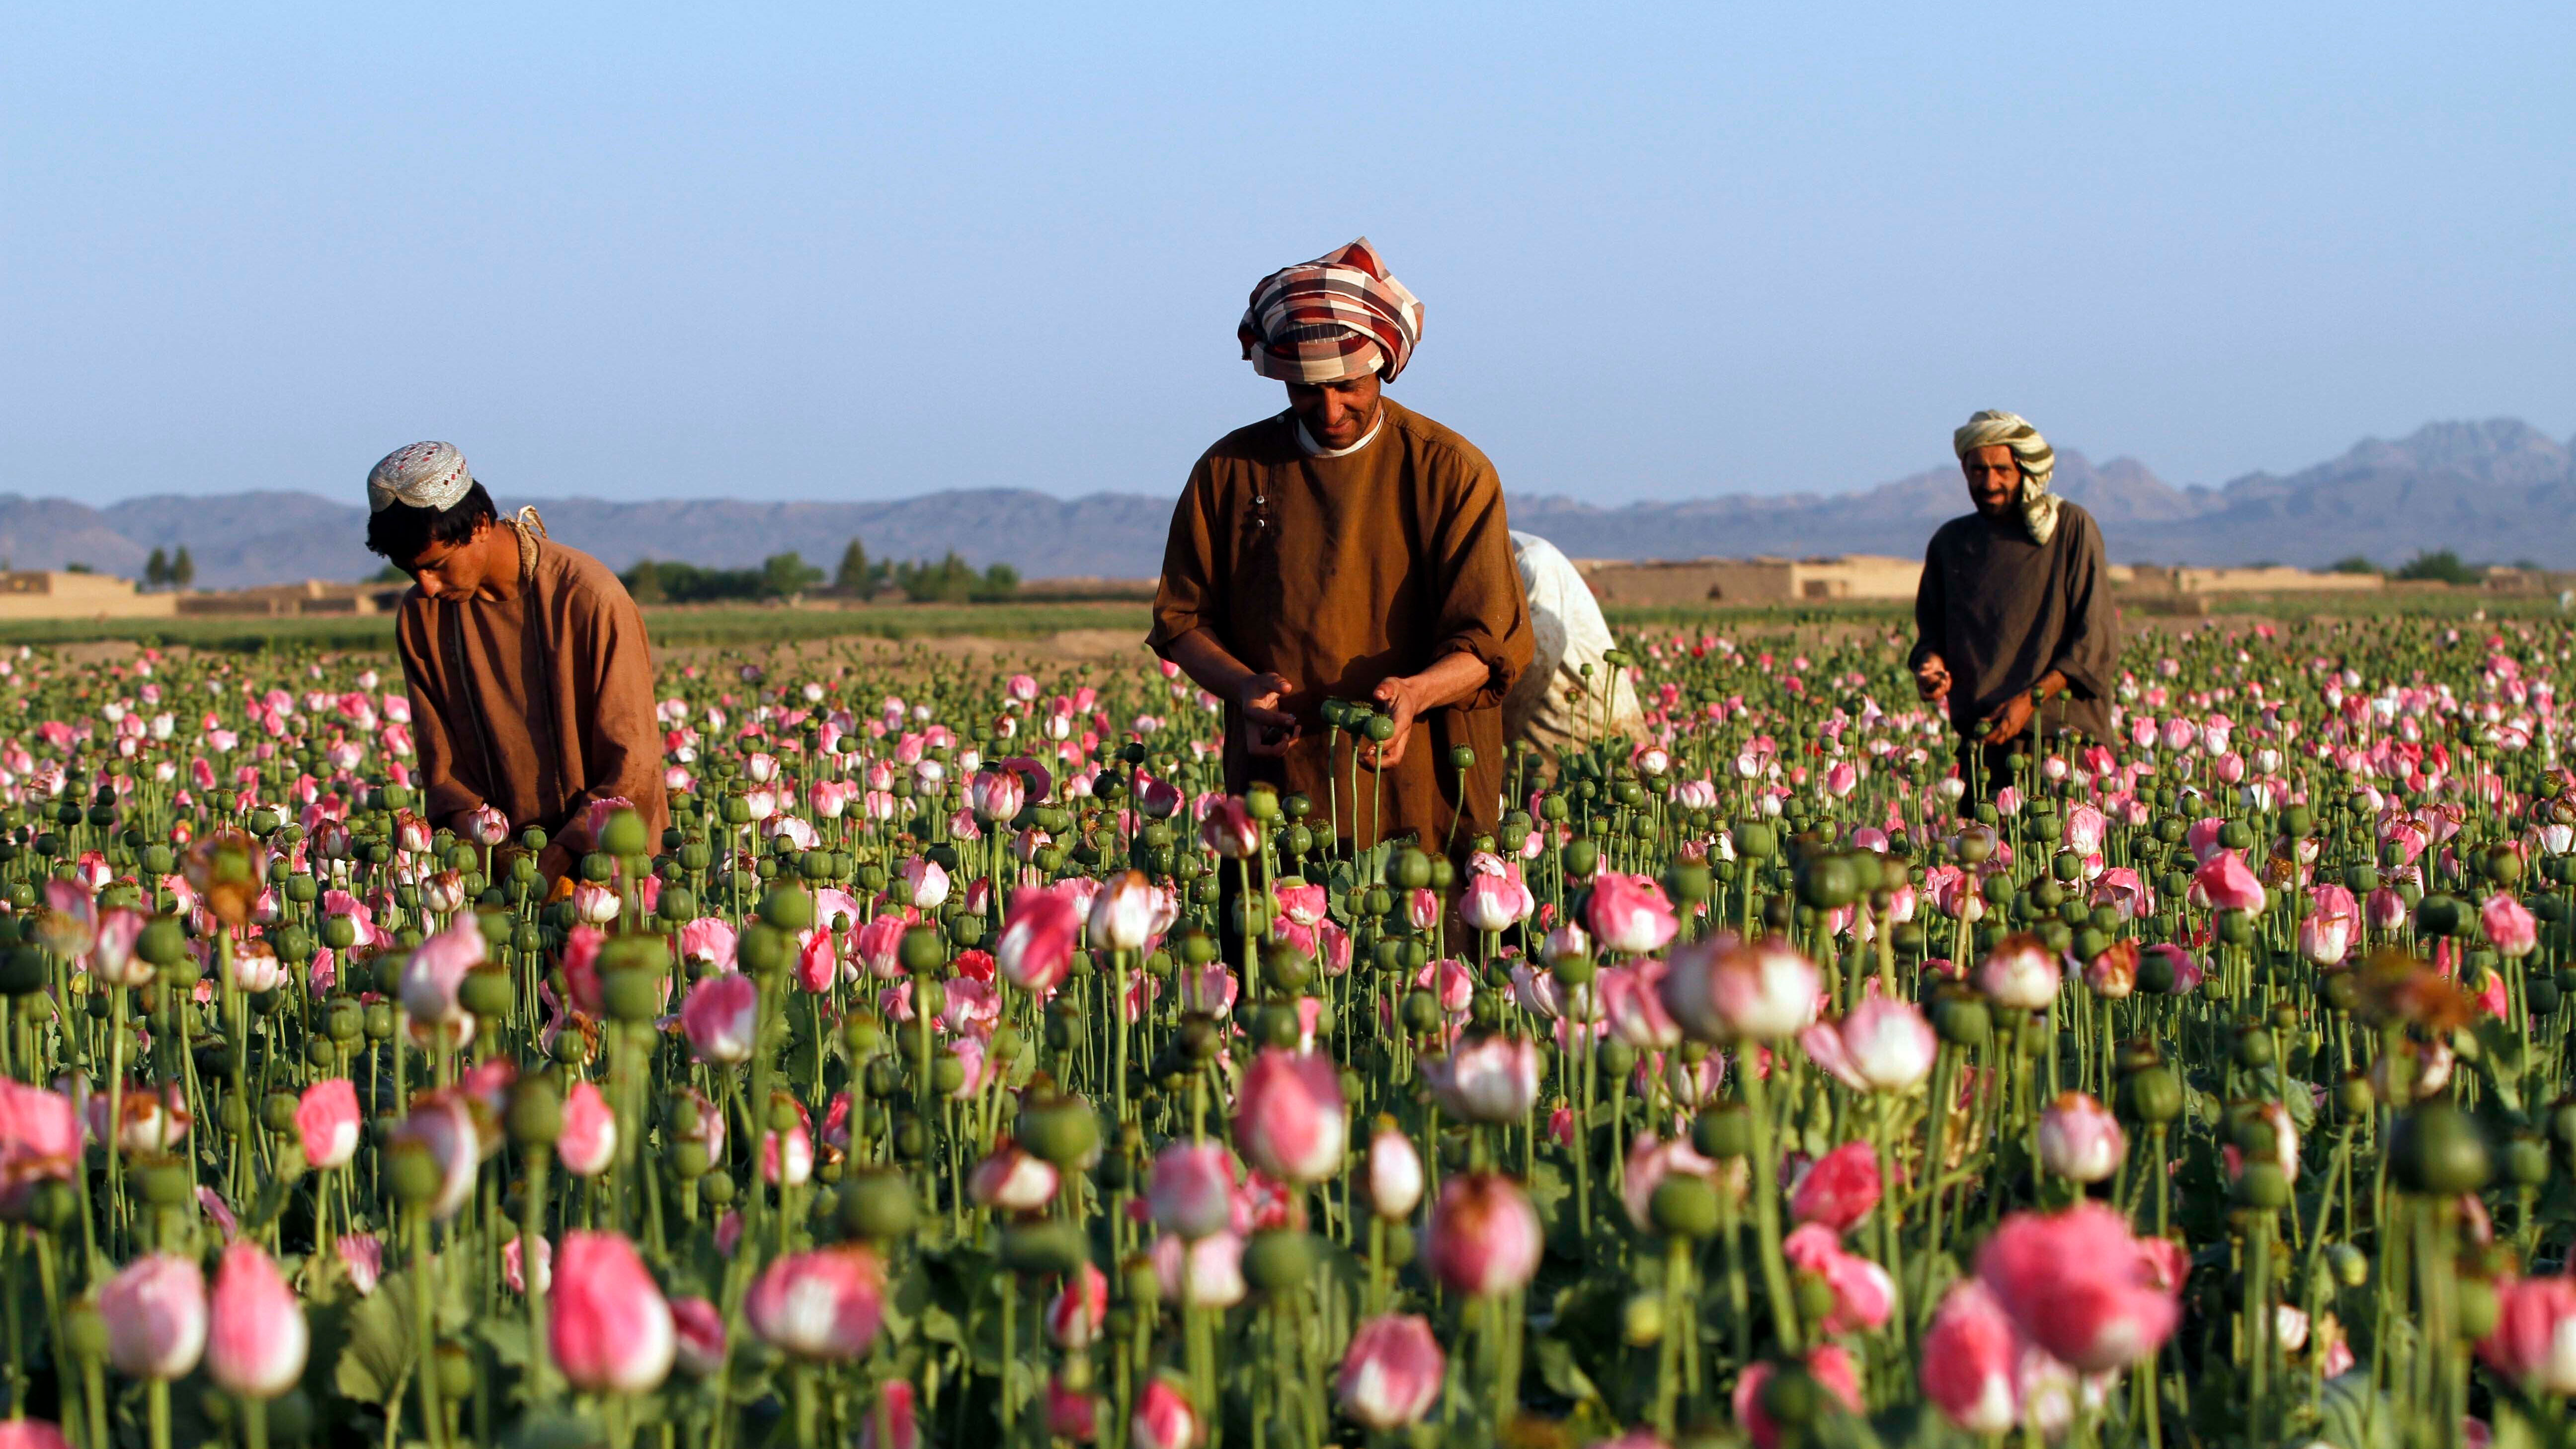 Farmers harvest raw opium at a poppy field in the Zhari district of Kandahar province, Afghanistan, in 2016.